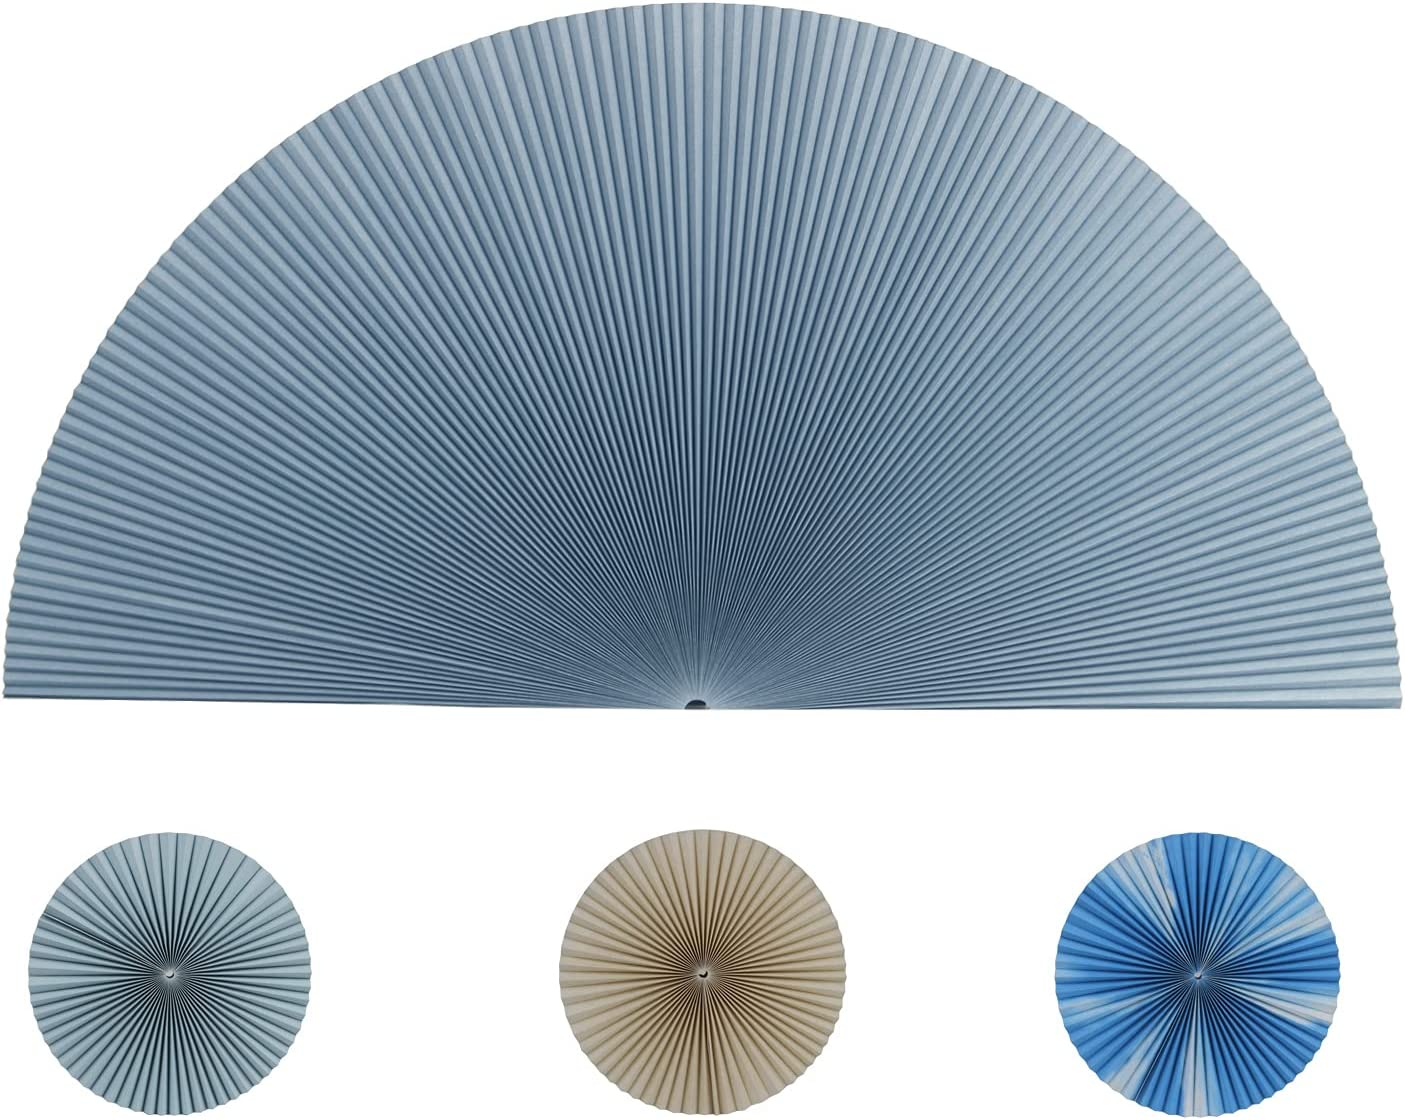 JDALL Cellular Honeycomb Pleated Blinds for Half Circle Arch WindowHalf Round Window Light Filtering Fabric Shade Quick Fix and Easy to Install-Blue 2 Packs